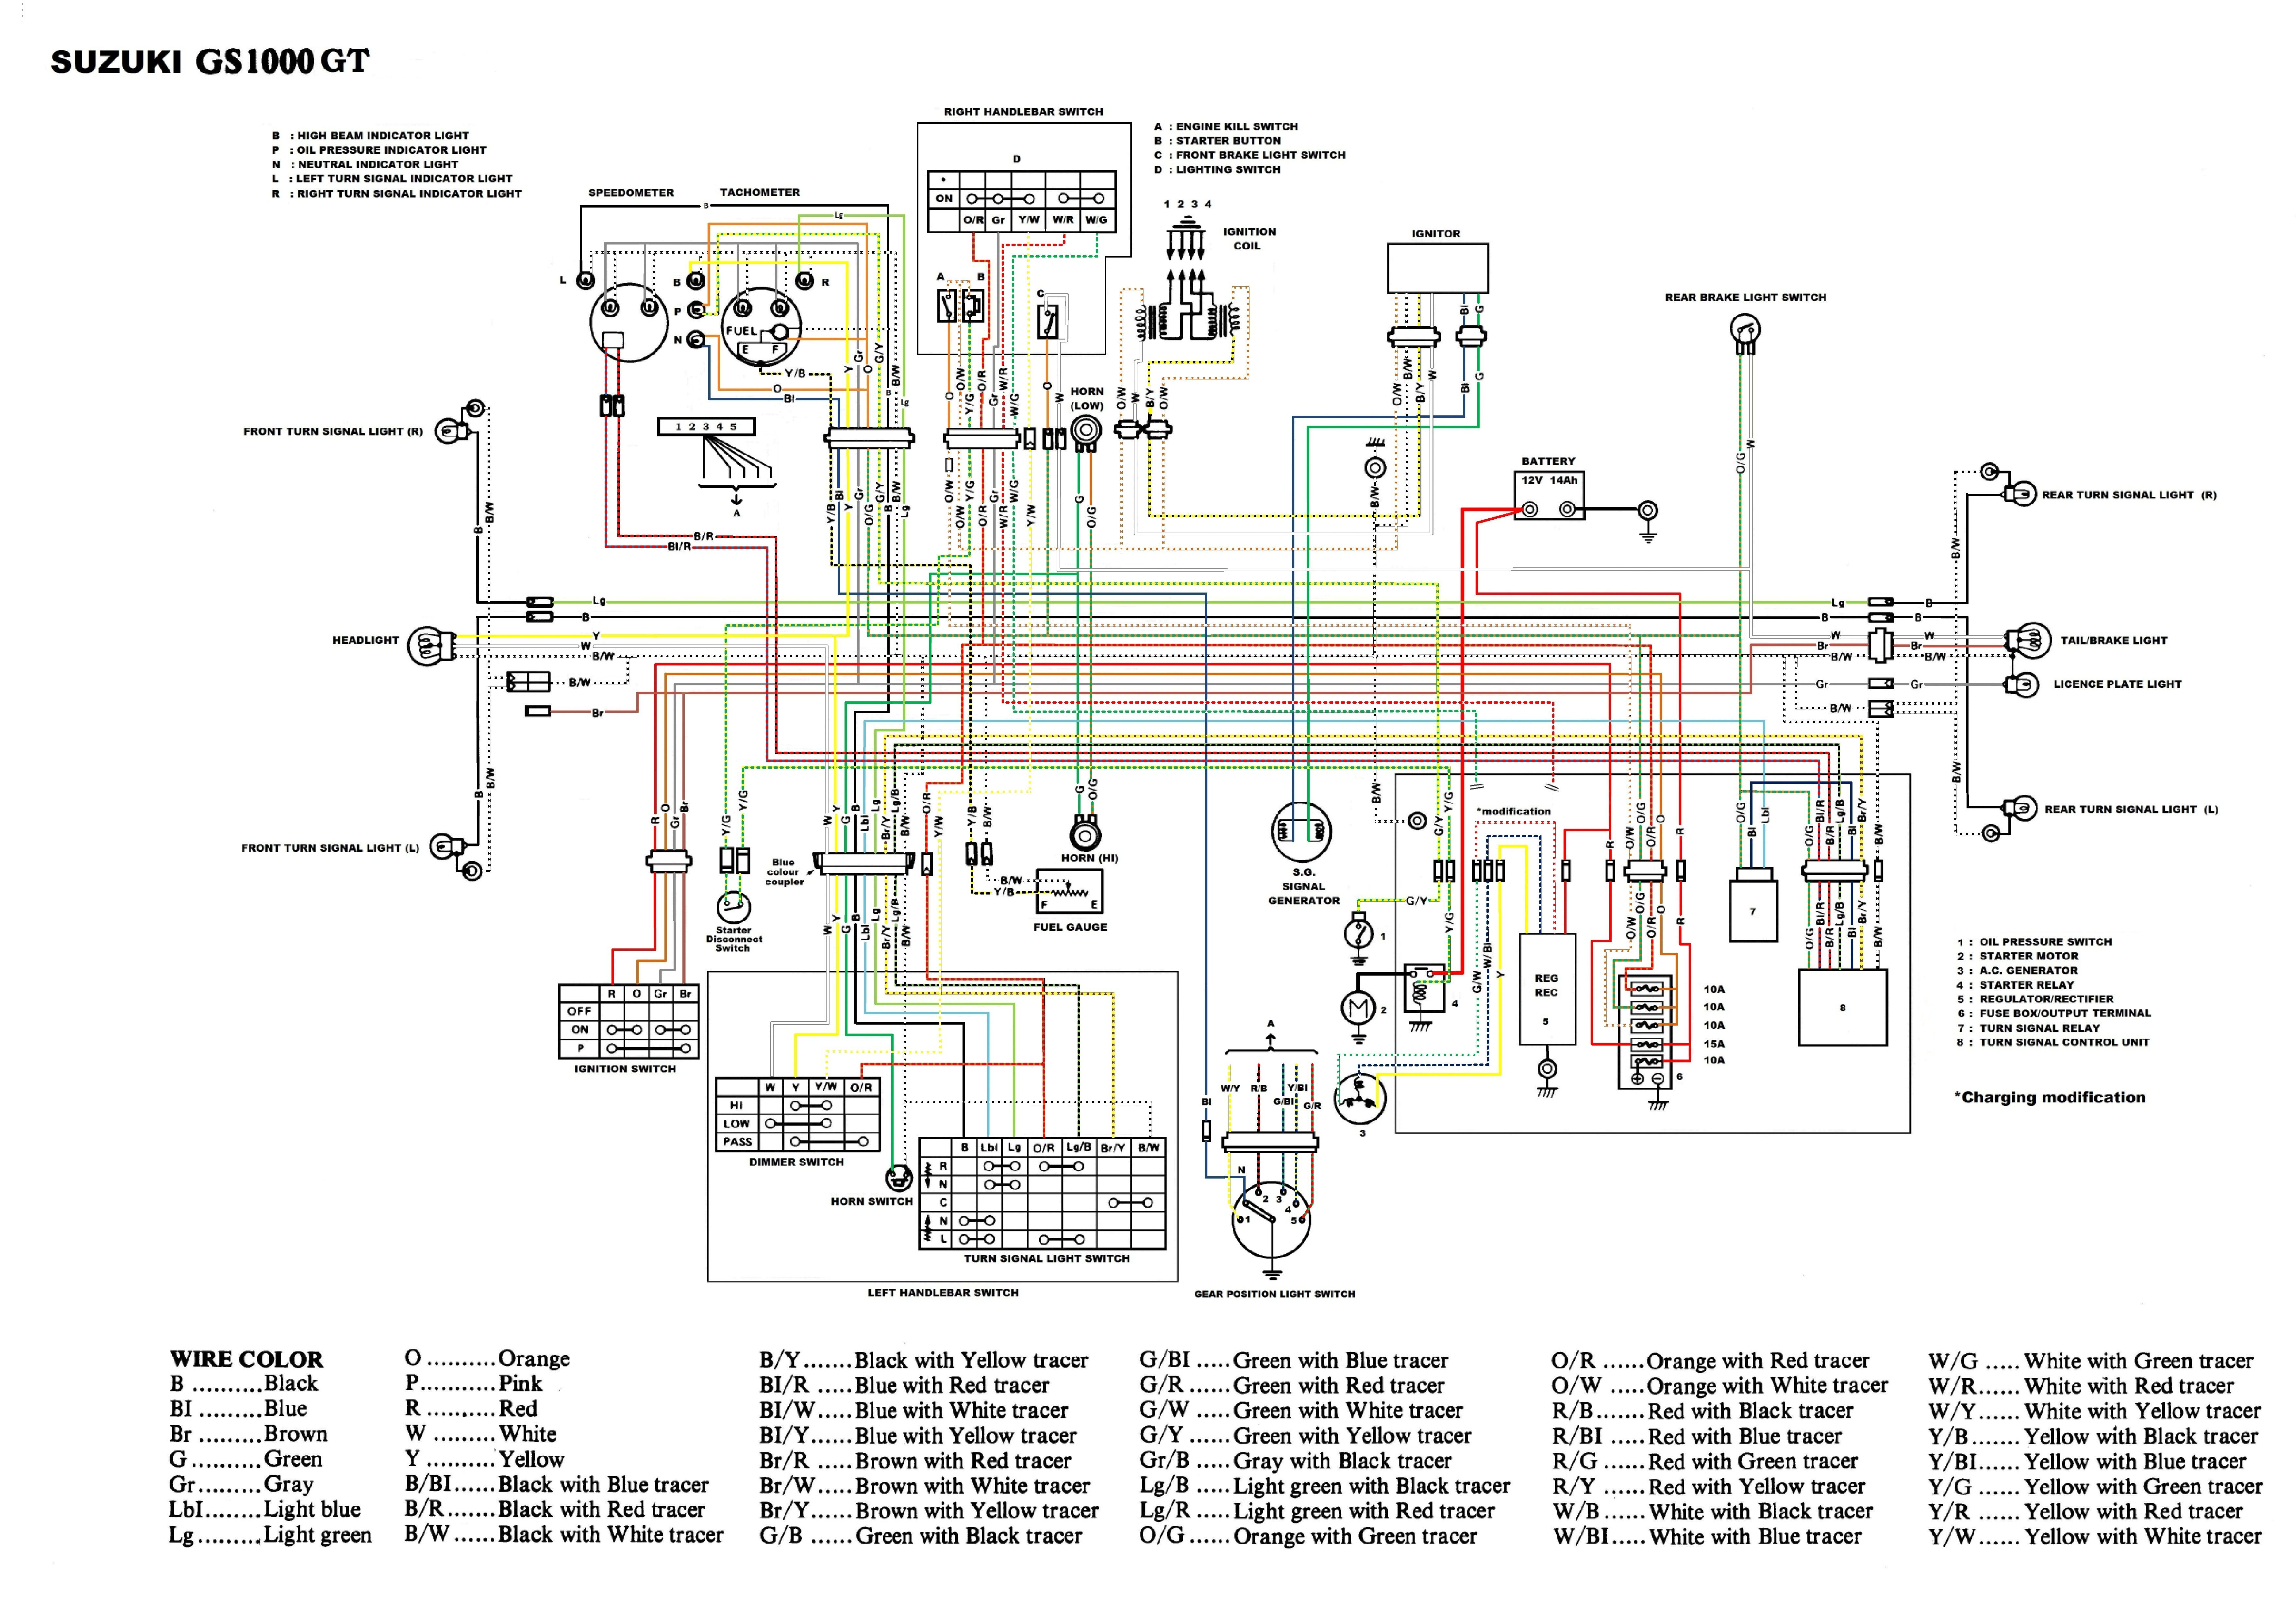 gs450 wire diagram wiring diagram for you chopper wiring diagram suzuki gs450 wiring diagram [ 7025 x 4969 Pixel ]